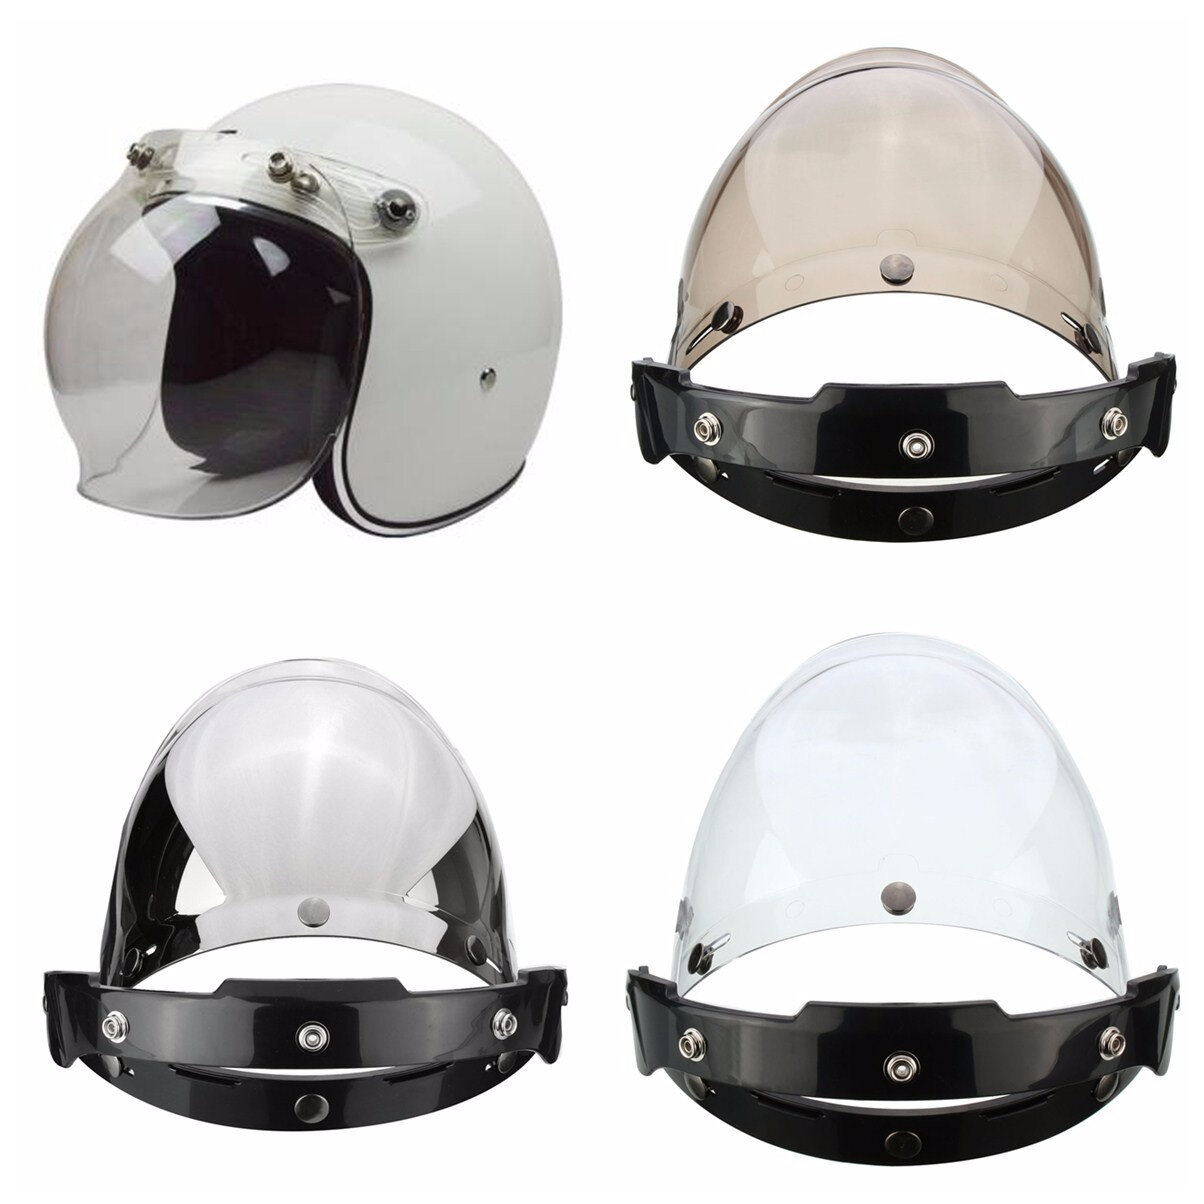 b7b8aa05 3-Snap Button Bubble Visor Flip Up Wind Face Shield Lens for Motorcycle  Helmet 3 Color - Transparent COD